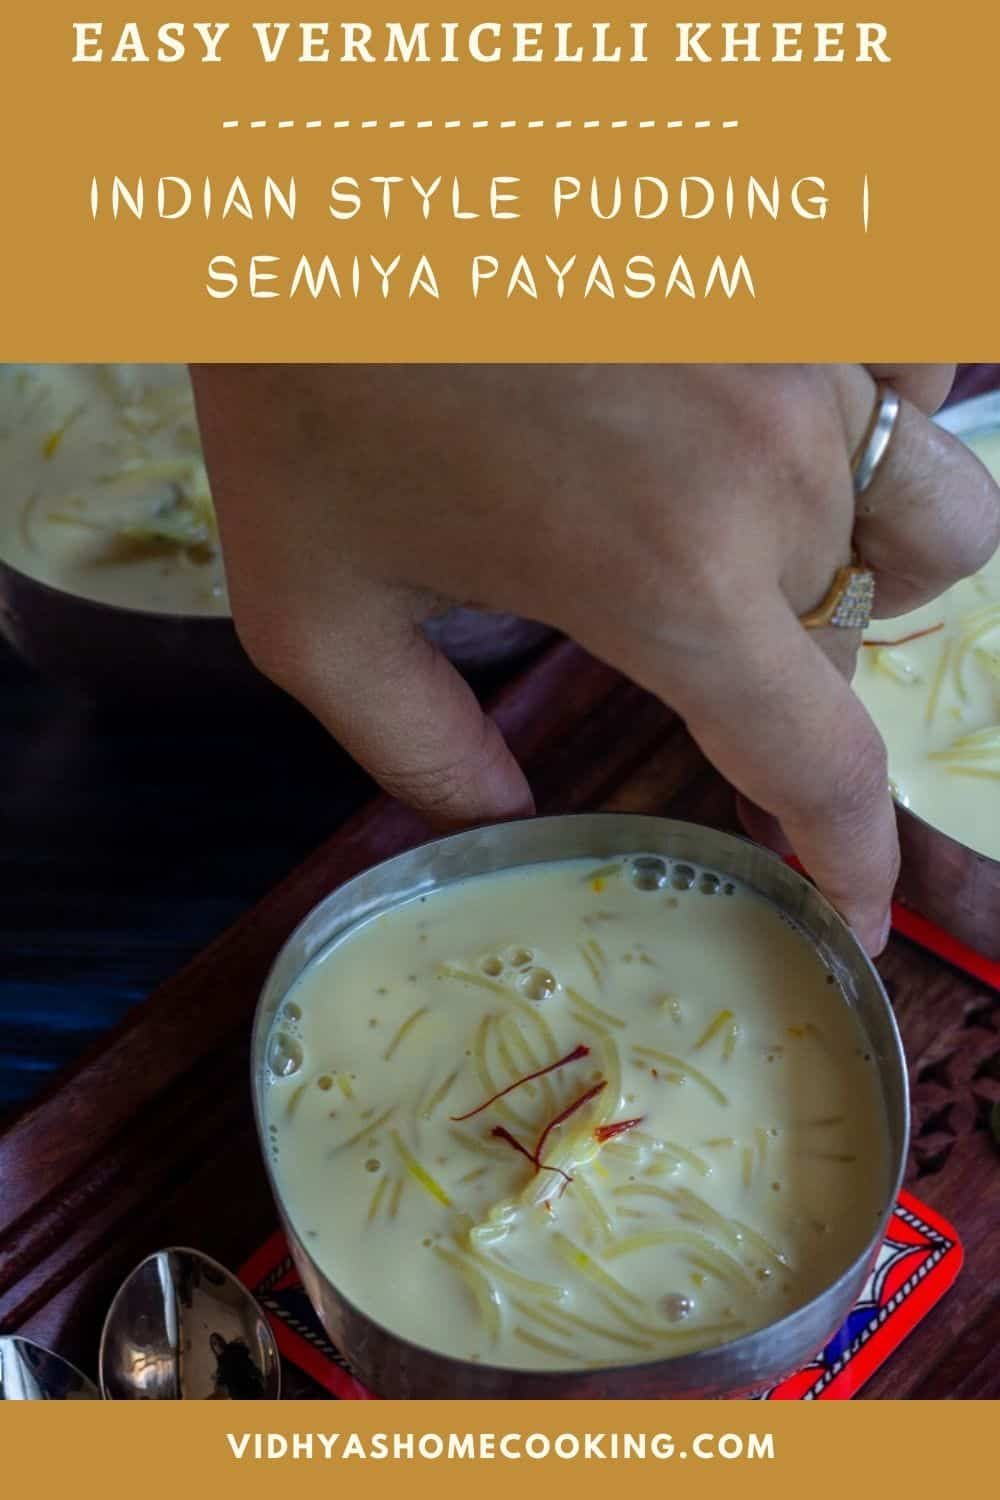 Quick Easy Recipe For Rich Creamy Vermicelli Kheer Or Semiya Payasam A Perfect Recipe In 2020 Amazing Vegetarian Recipes Delicious Vegan Recipes Quick Easy Meals